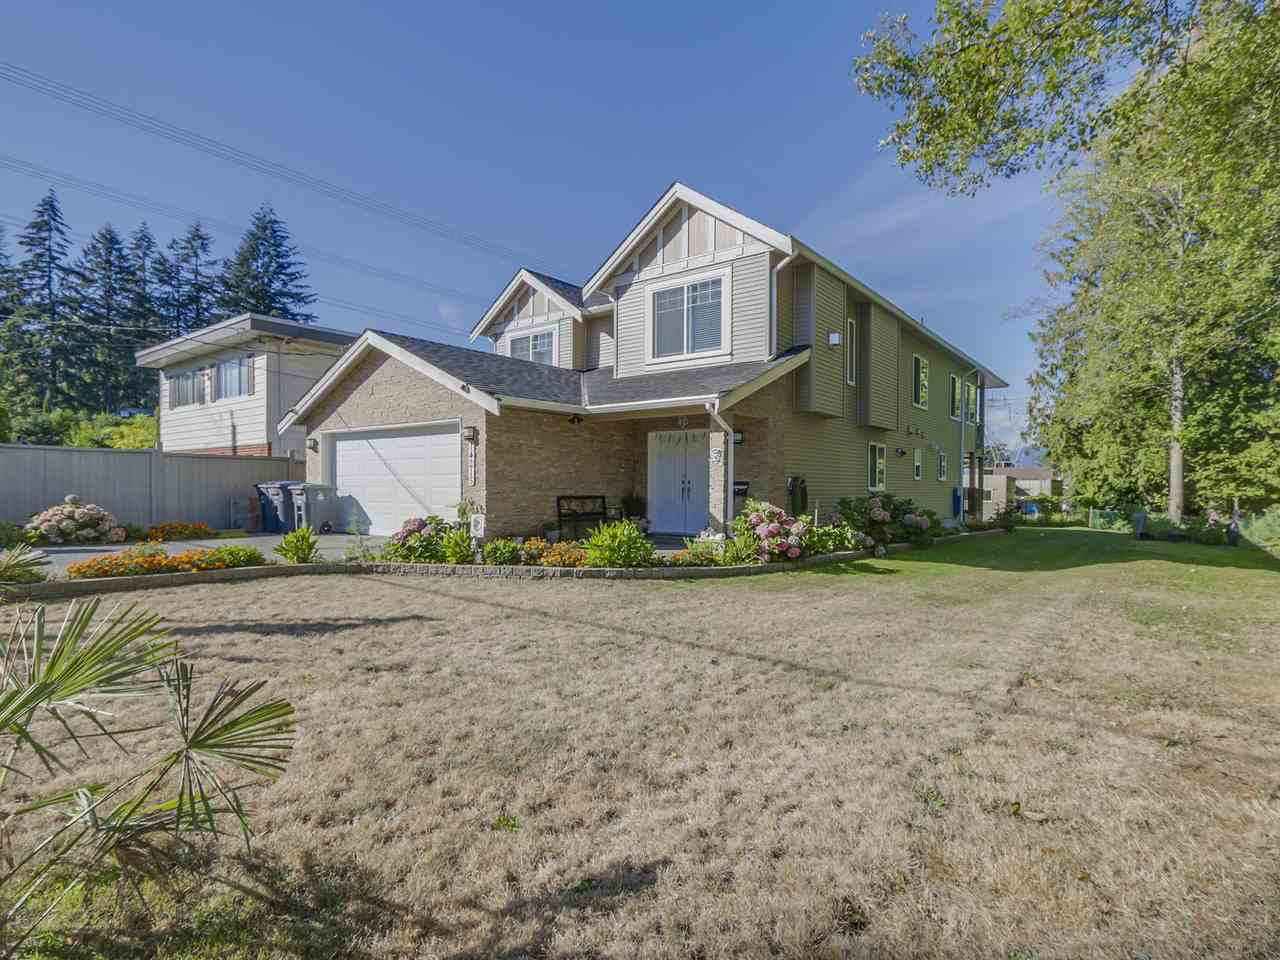 Main Photo: 14215 MELROSE Drive in Surrey: Bolivar Heights House for sale (North Surrey)  : MLS®# R2130910